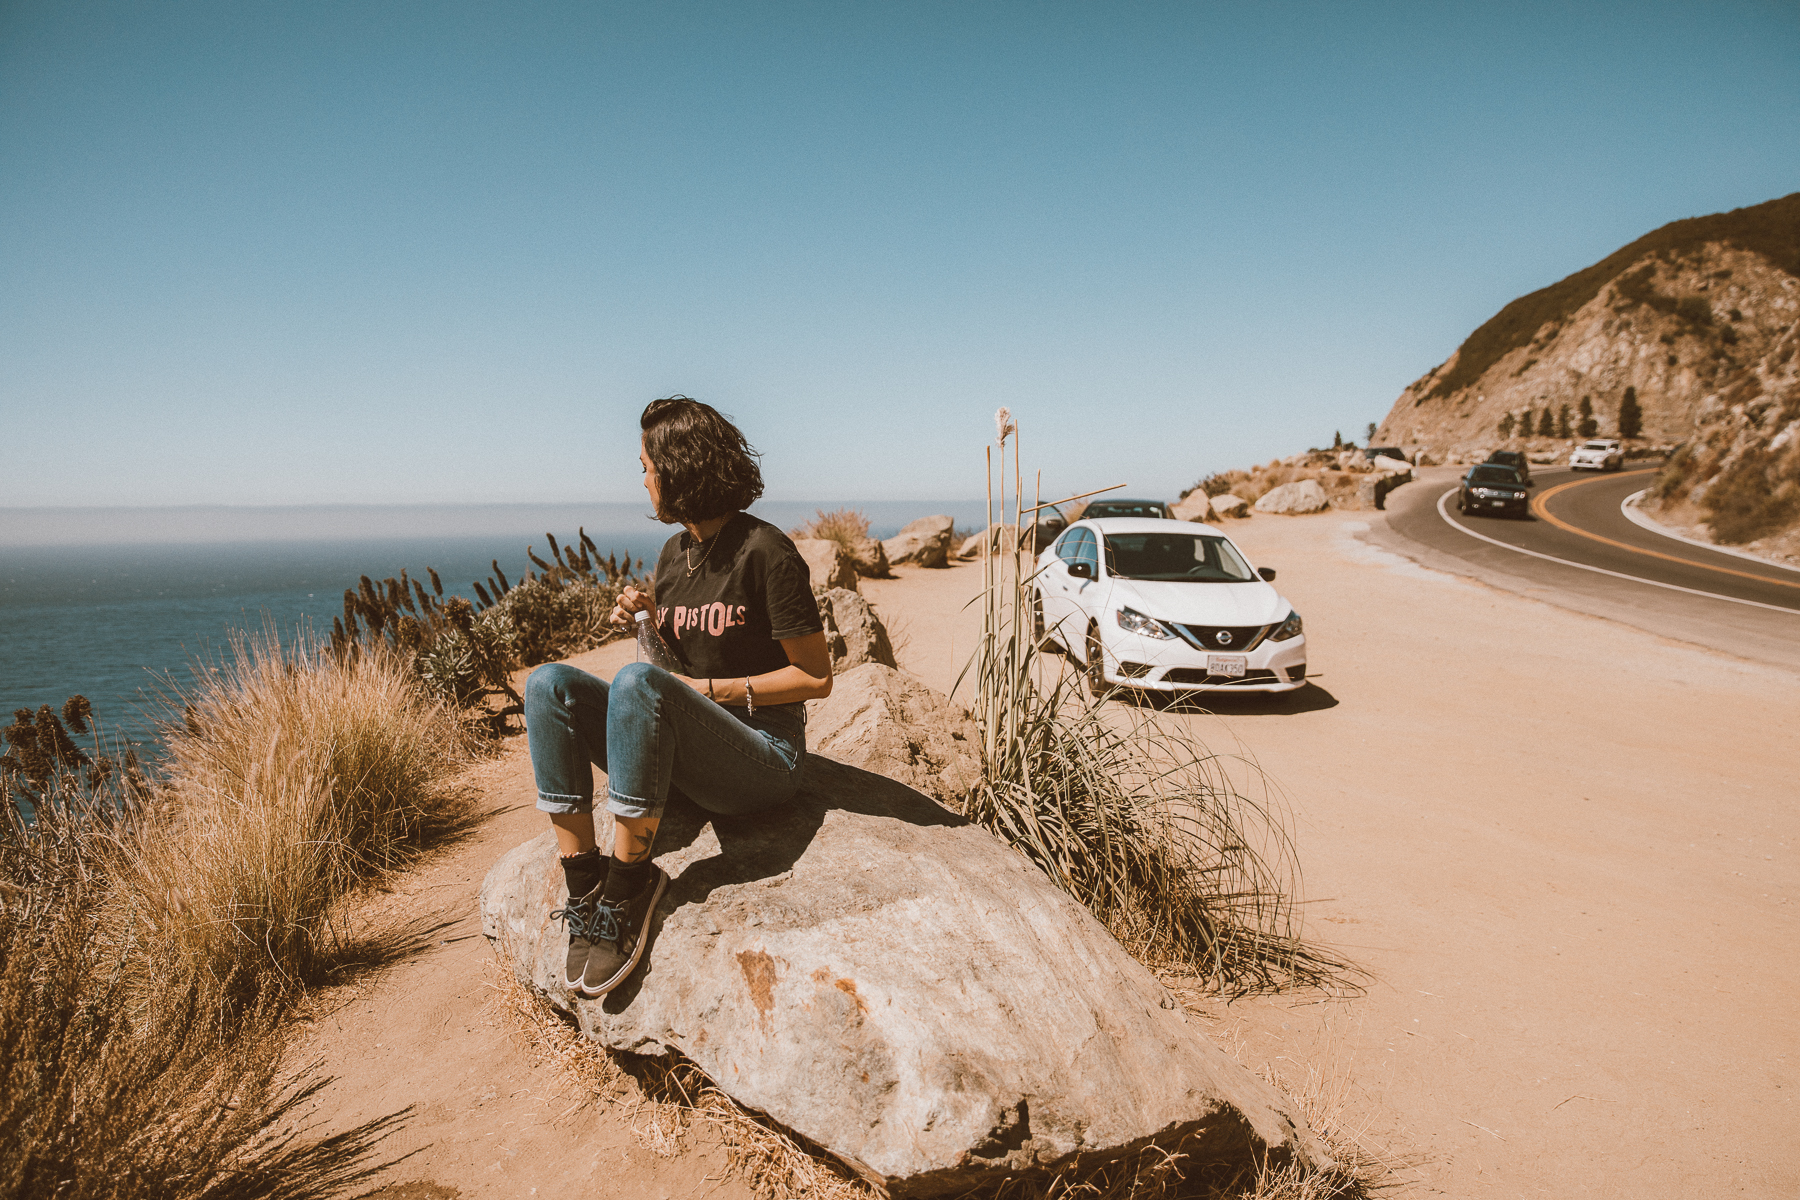 California Big Sur Route 1 Road trip by photographer Ailera Stone